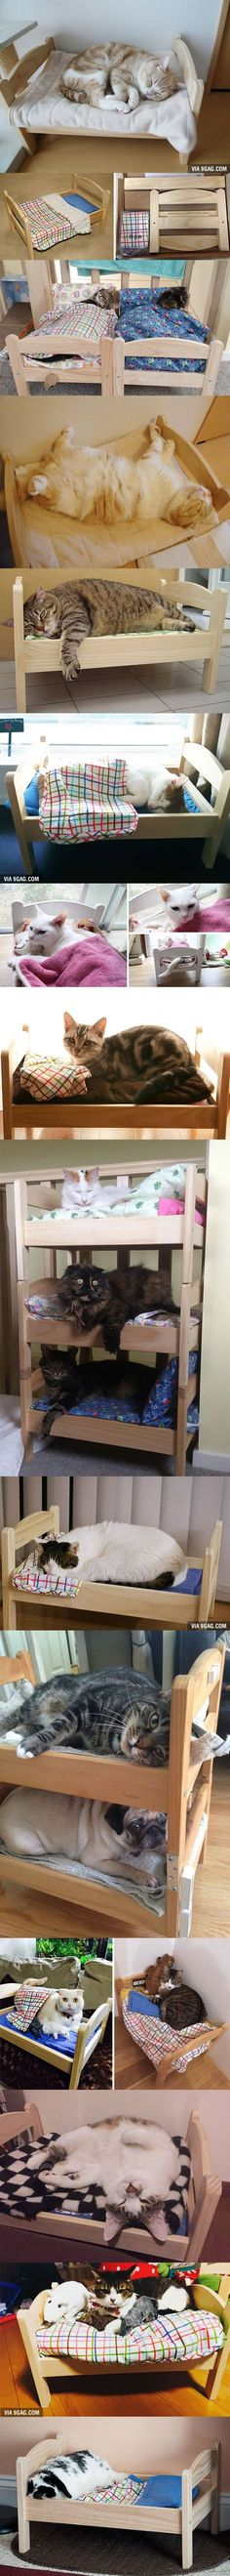 Japanese Cat Owners Turn IKEA Doll Beds Into Adorable Cat Beds there's also a pug